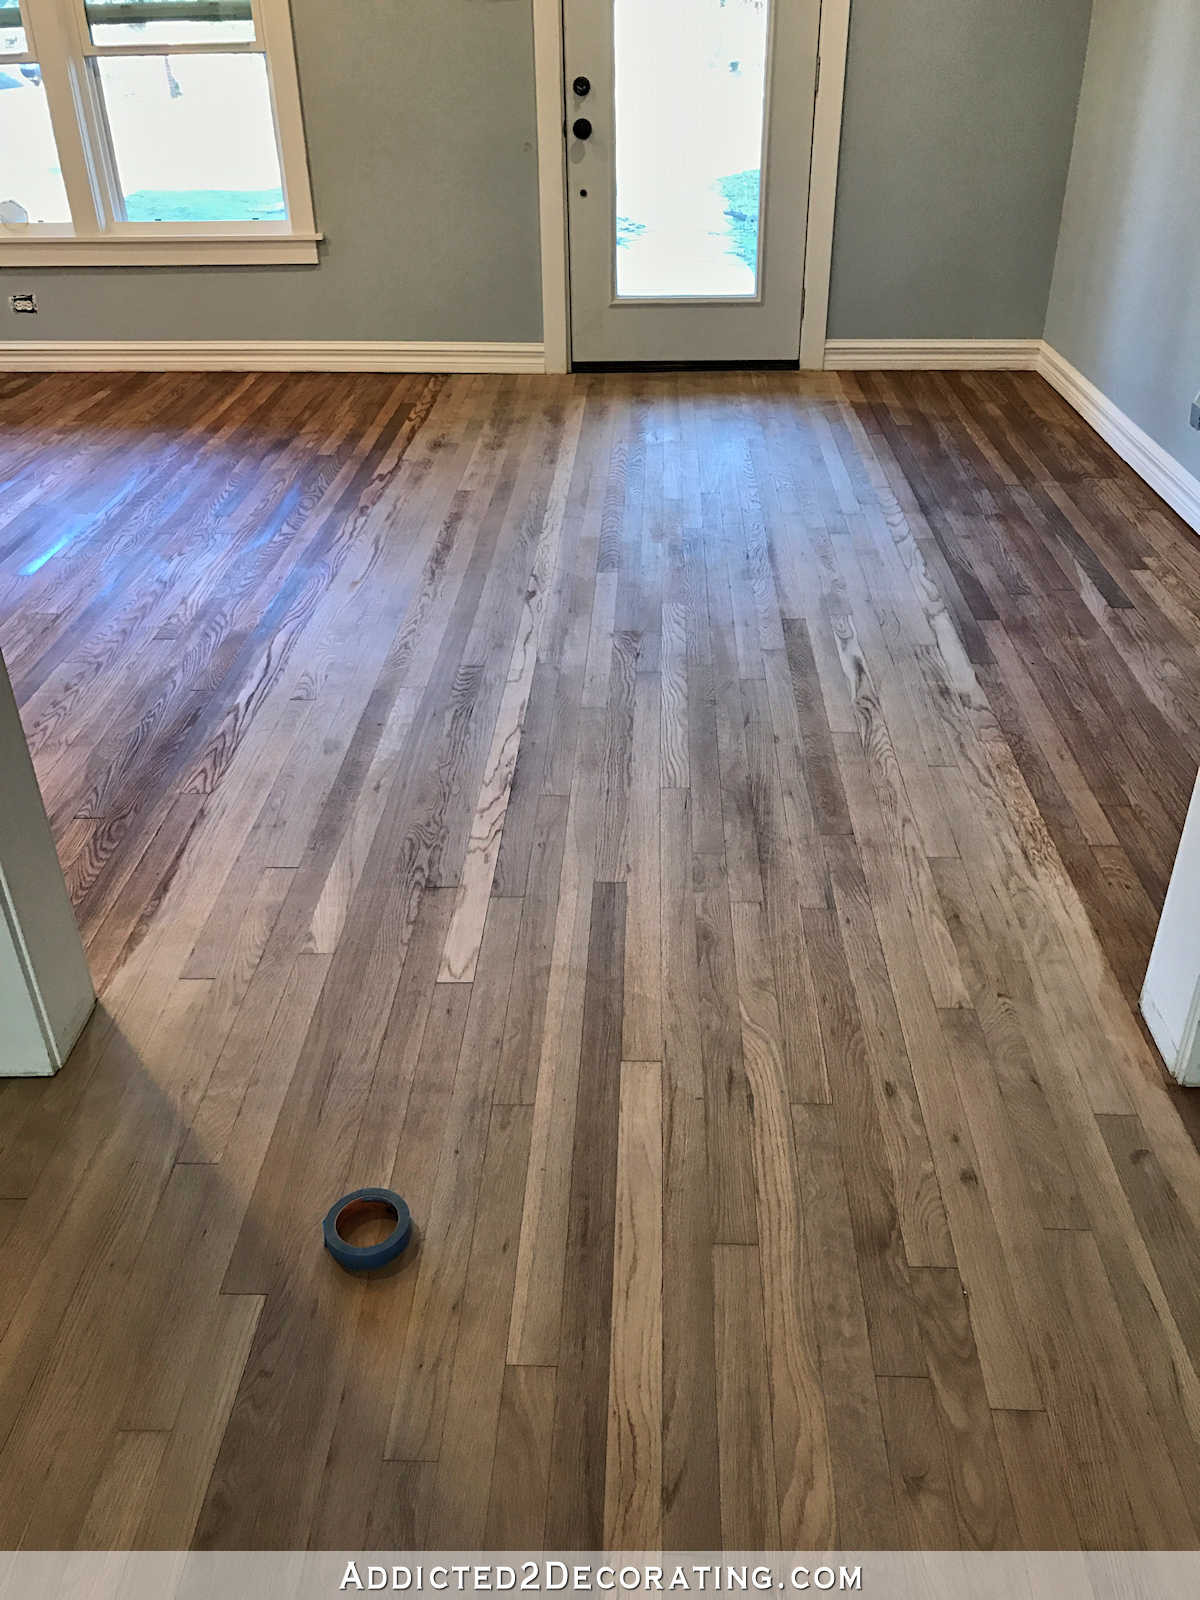 hardwood flooring stairs diy of adventures in staining my red oak hardwood floors products process inside staining red oak hardwood floors 4 entryway and living room wood conditioner